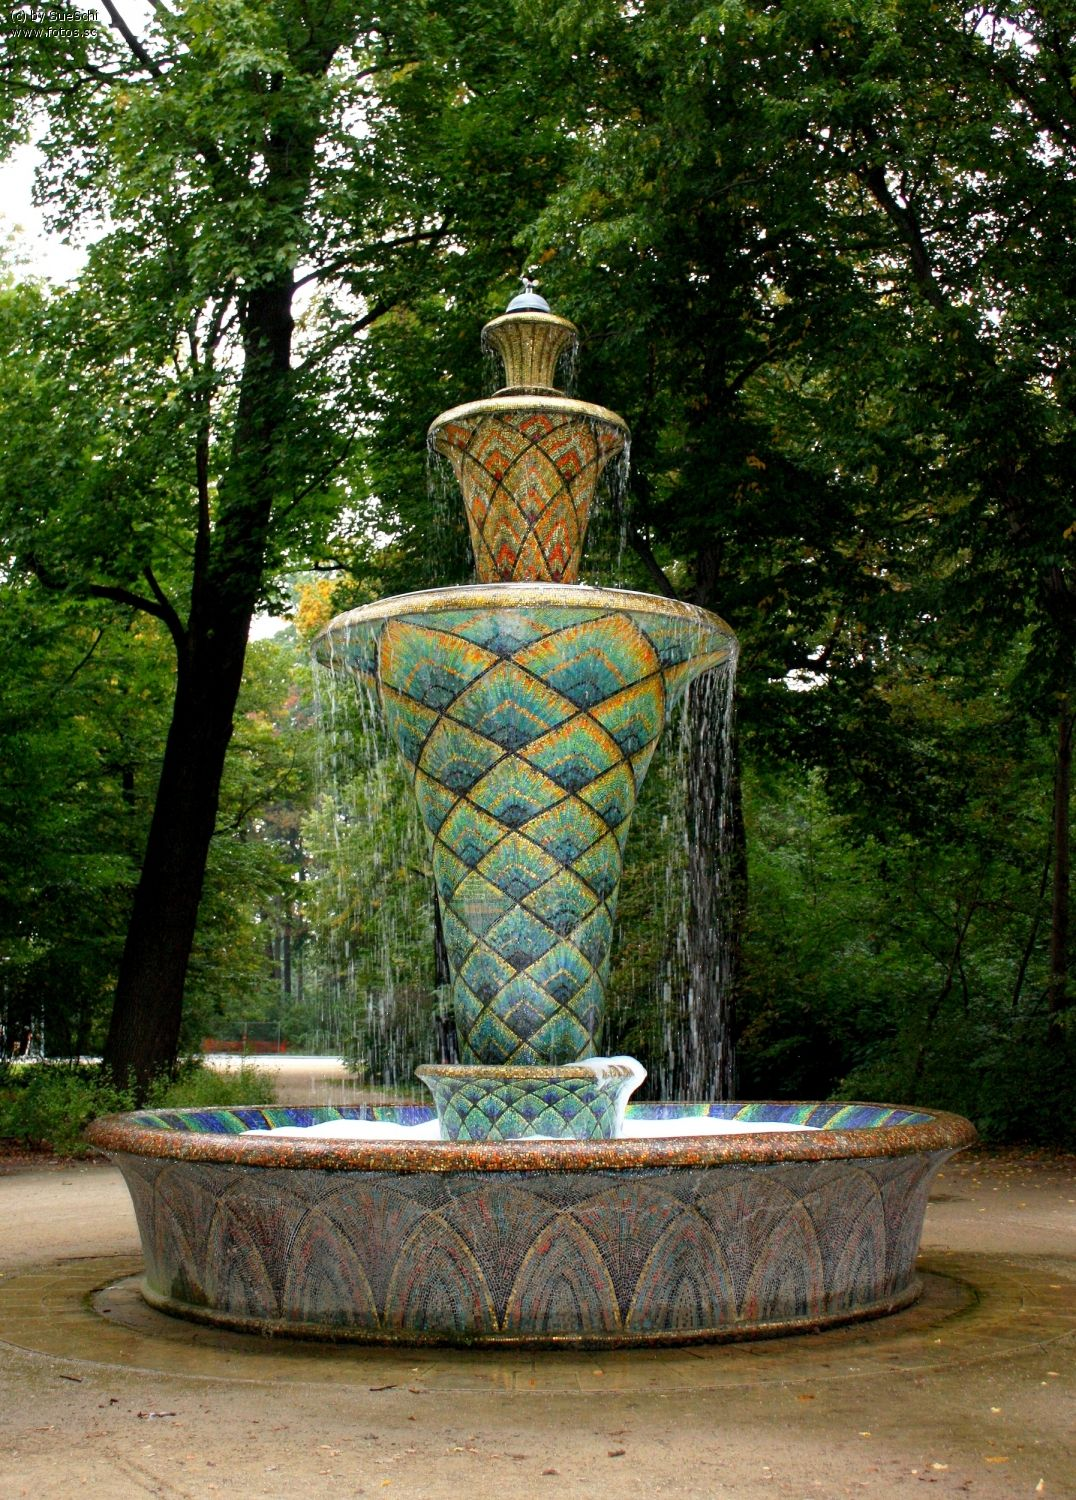 sachsen stadtpark denkmal schloss dresden park barock garten brunnen gold mosaik. Black Bedroom Furniture Sets. Home Design Ideas